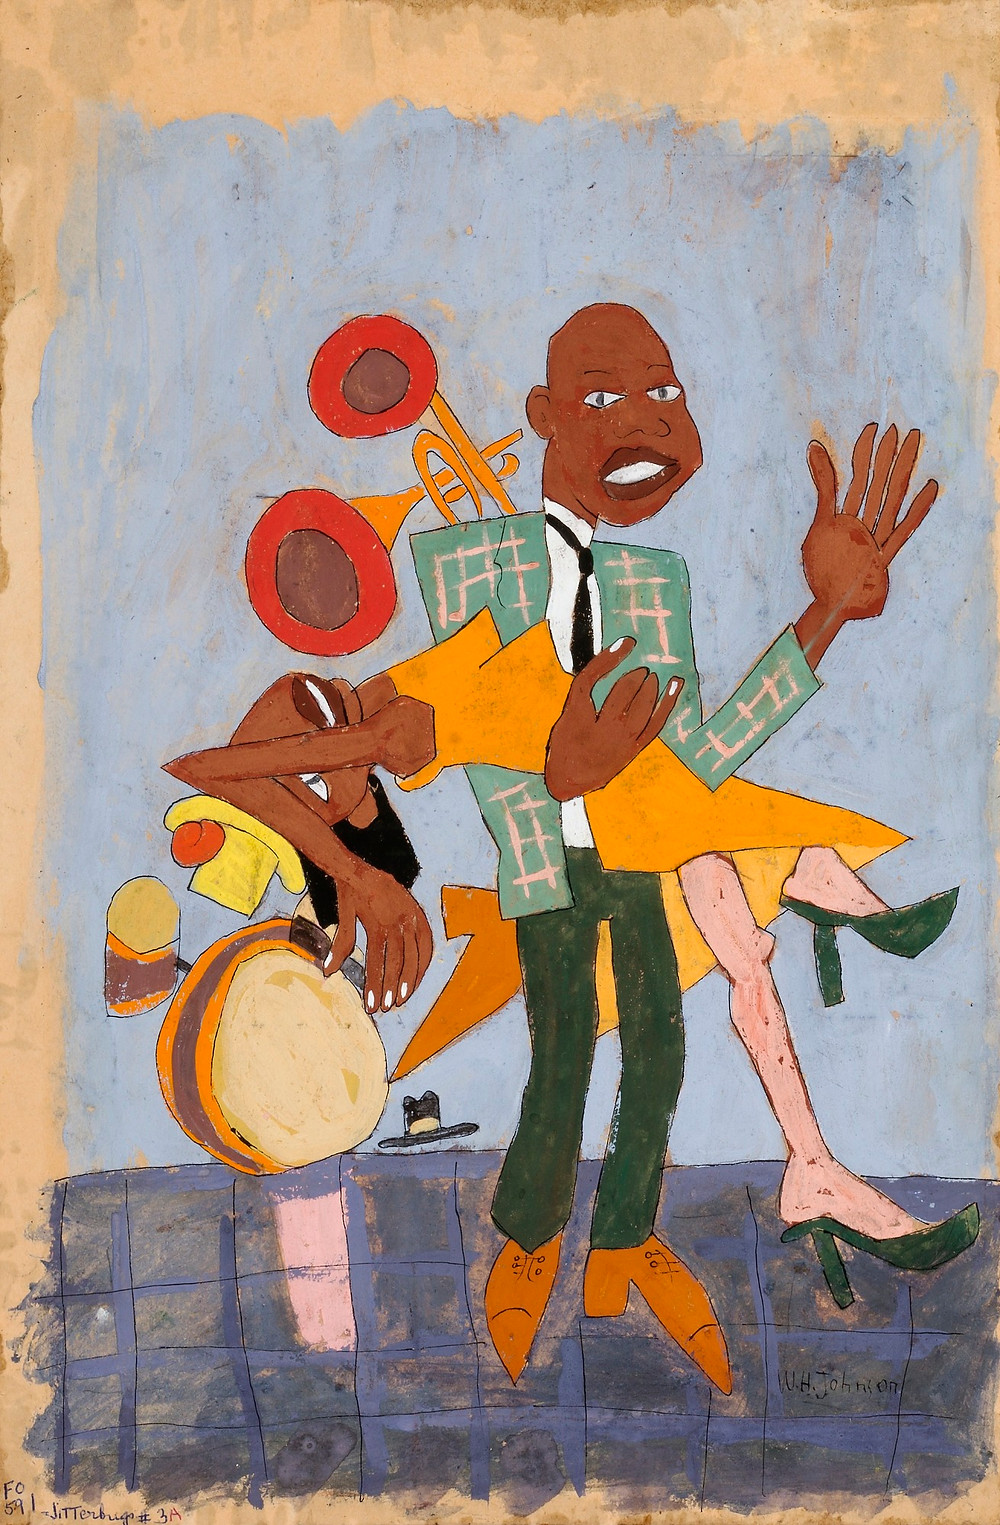 William H. Johnson, Jitterbugs (V), ca. 1941-1942, tempera and pen and ink on paper, Smithsonian American Art Museum, Gift of the Harmon Foundation, 1967.59.1101